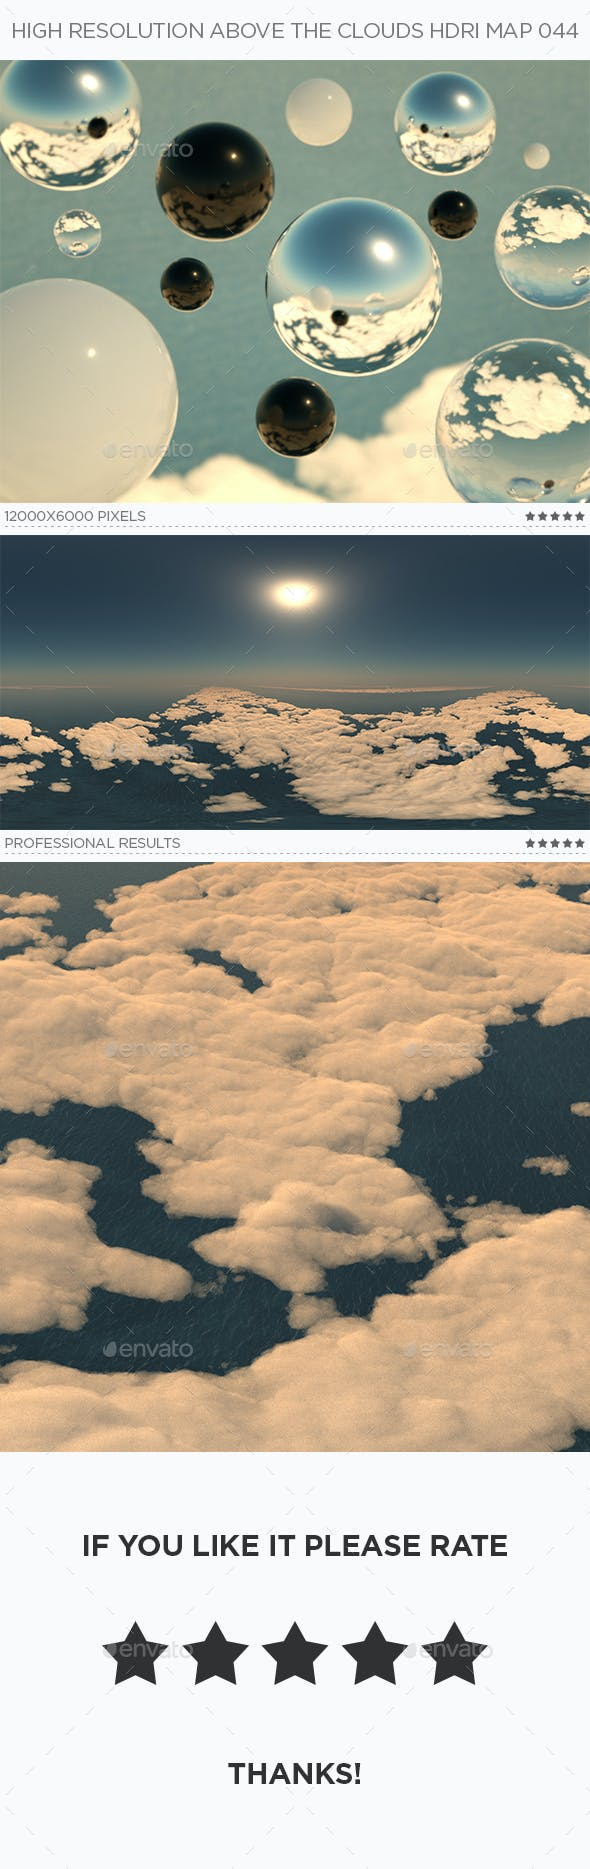 High Resolution Above The Clouds HDRi Map 044 - 3DOcean Item for Sale